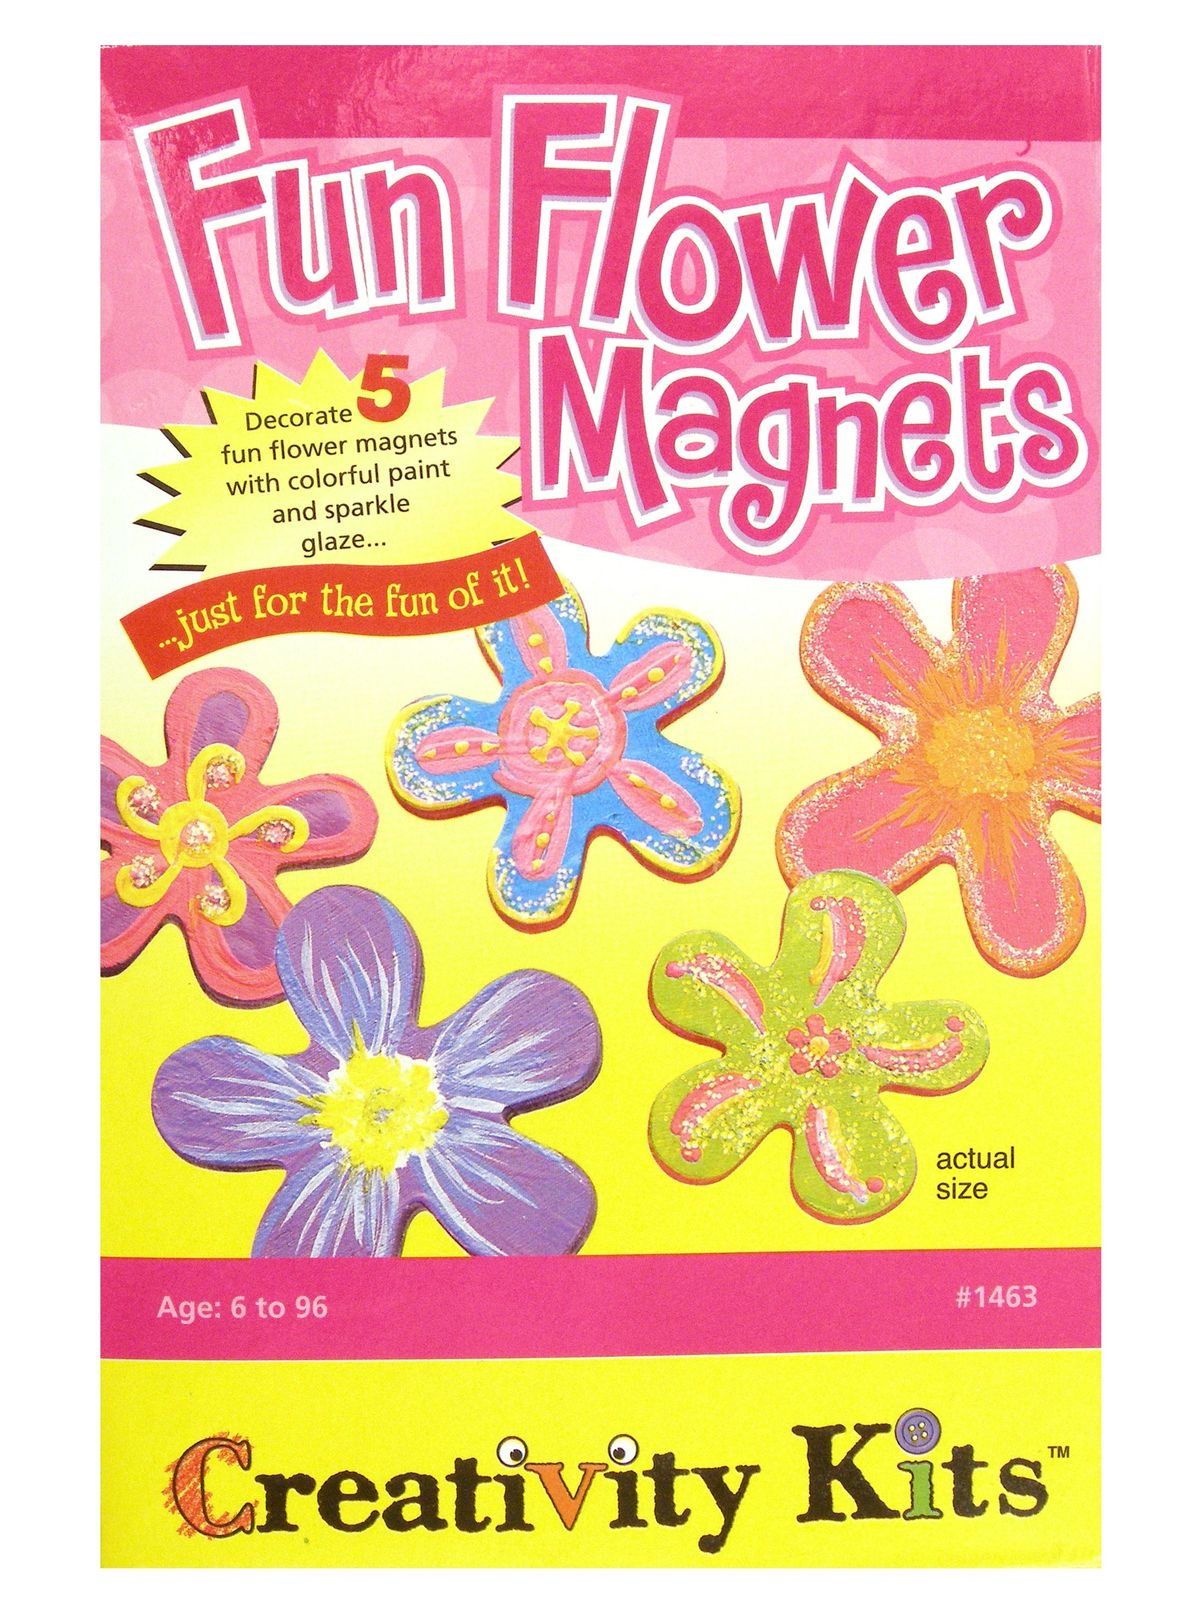 Fun Flower Magnets Mini Kit